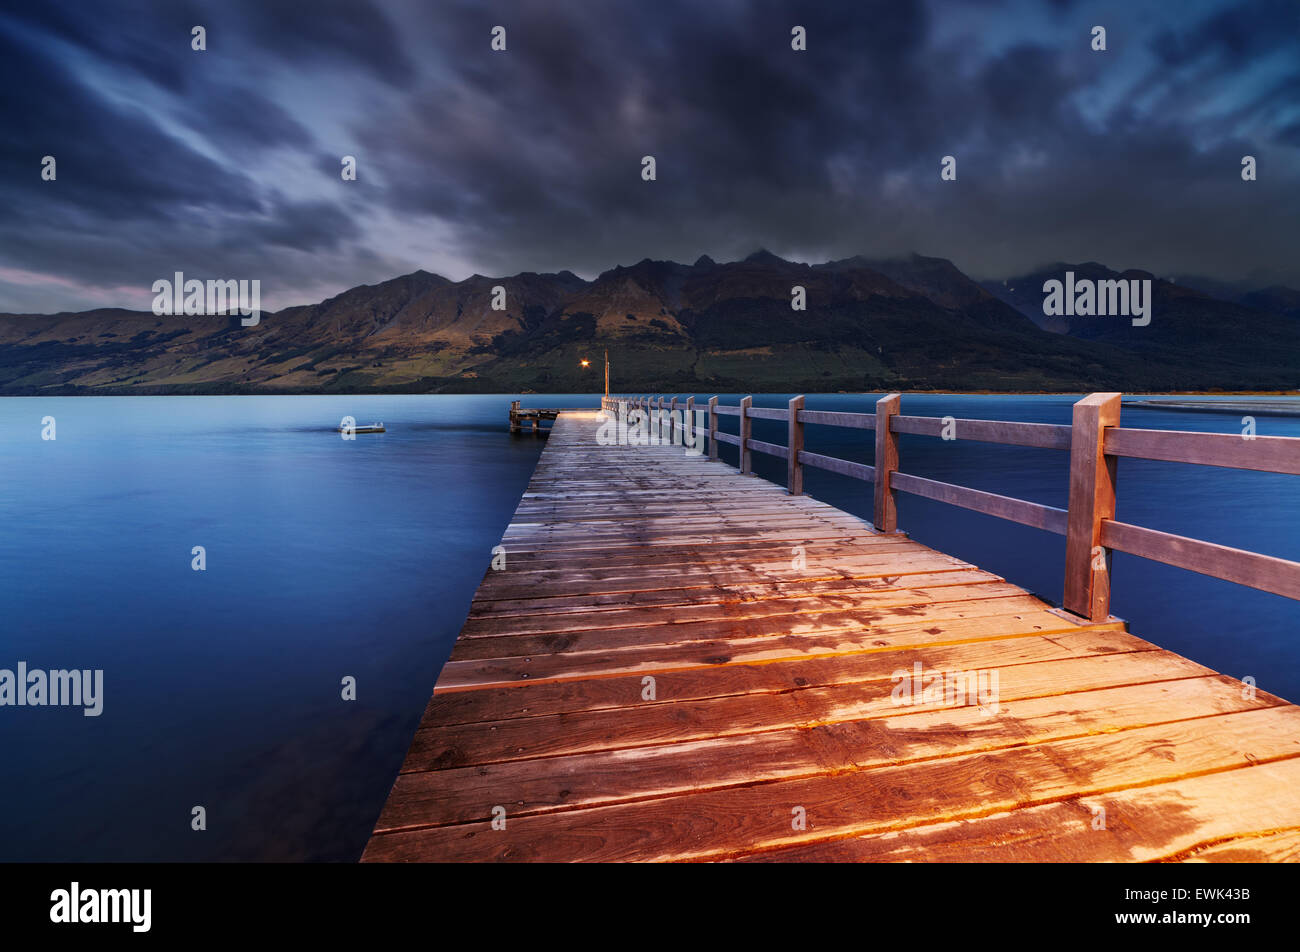 Wooden pier, Wakatipu Lake at dawn, Glenorchy, New Zealand - Stock Image